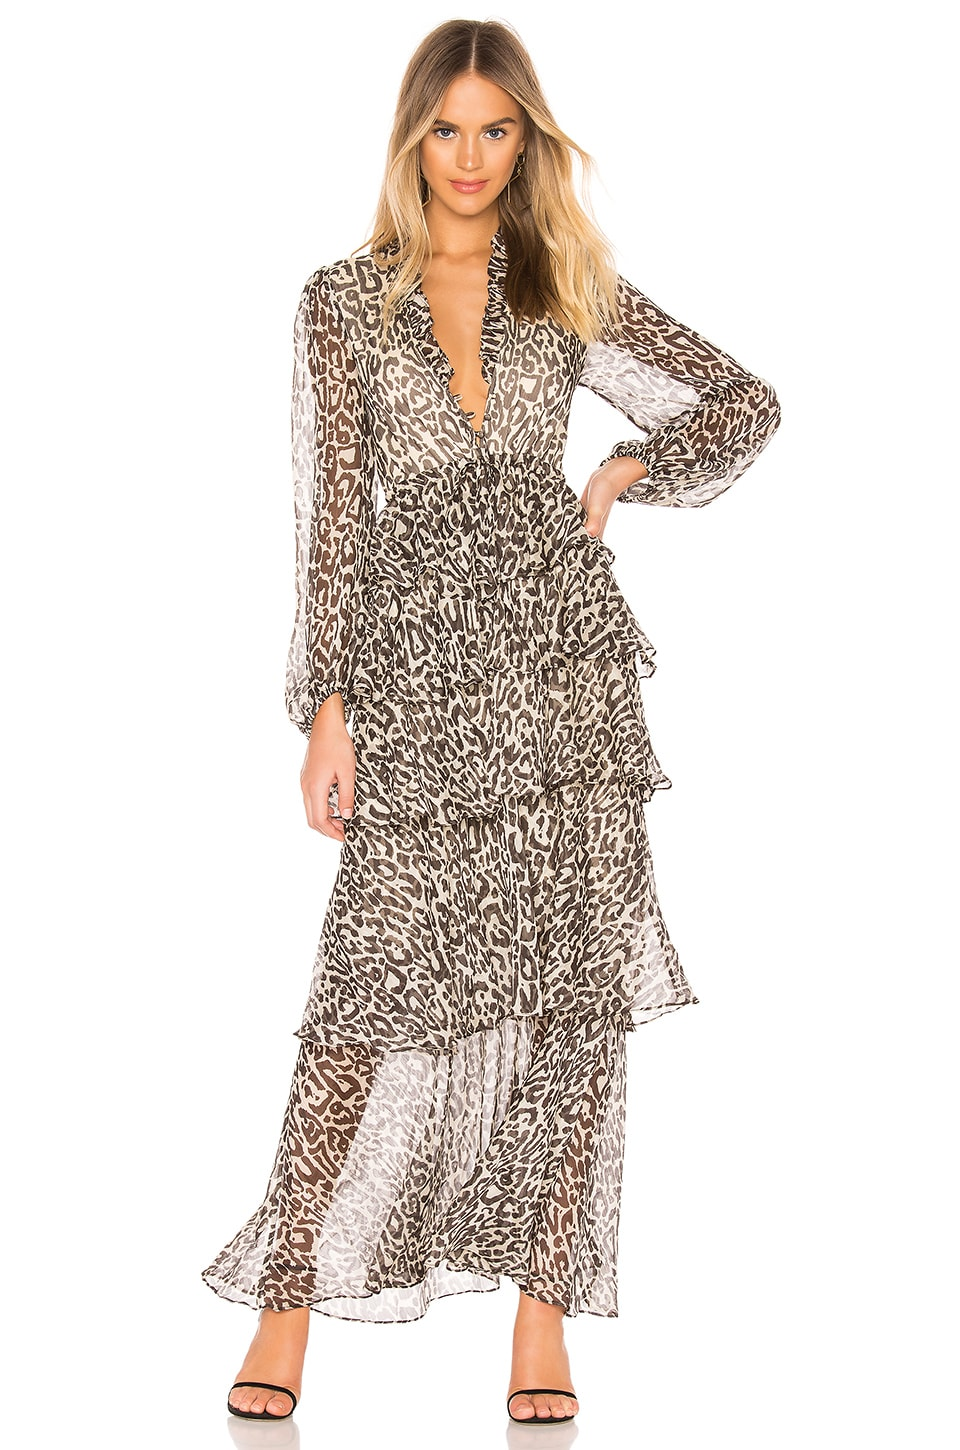 Shona Joy Mariposa Tiered Maxi Dress in Leopard